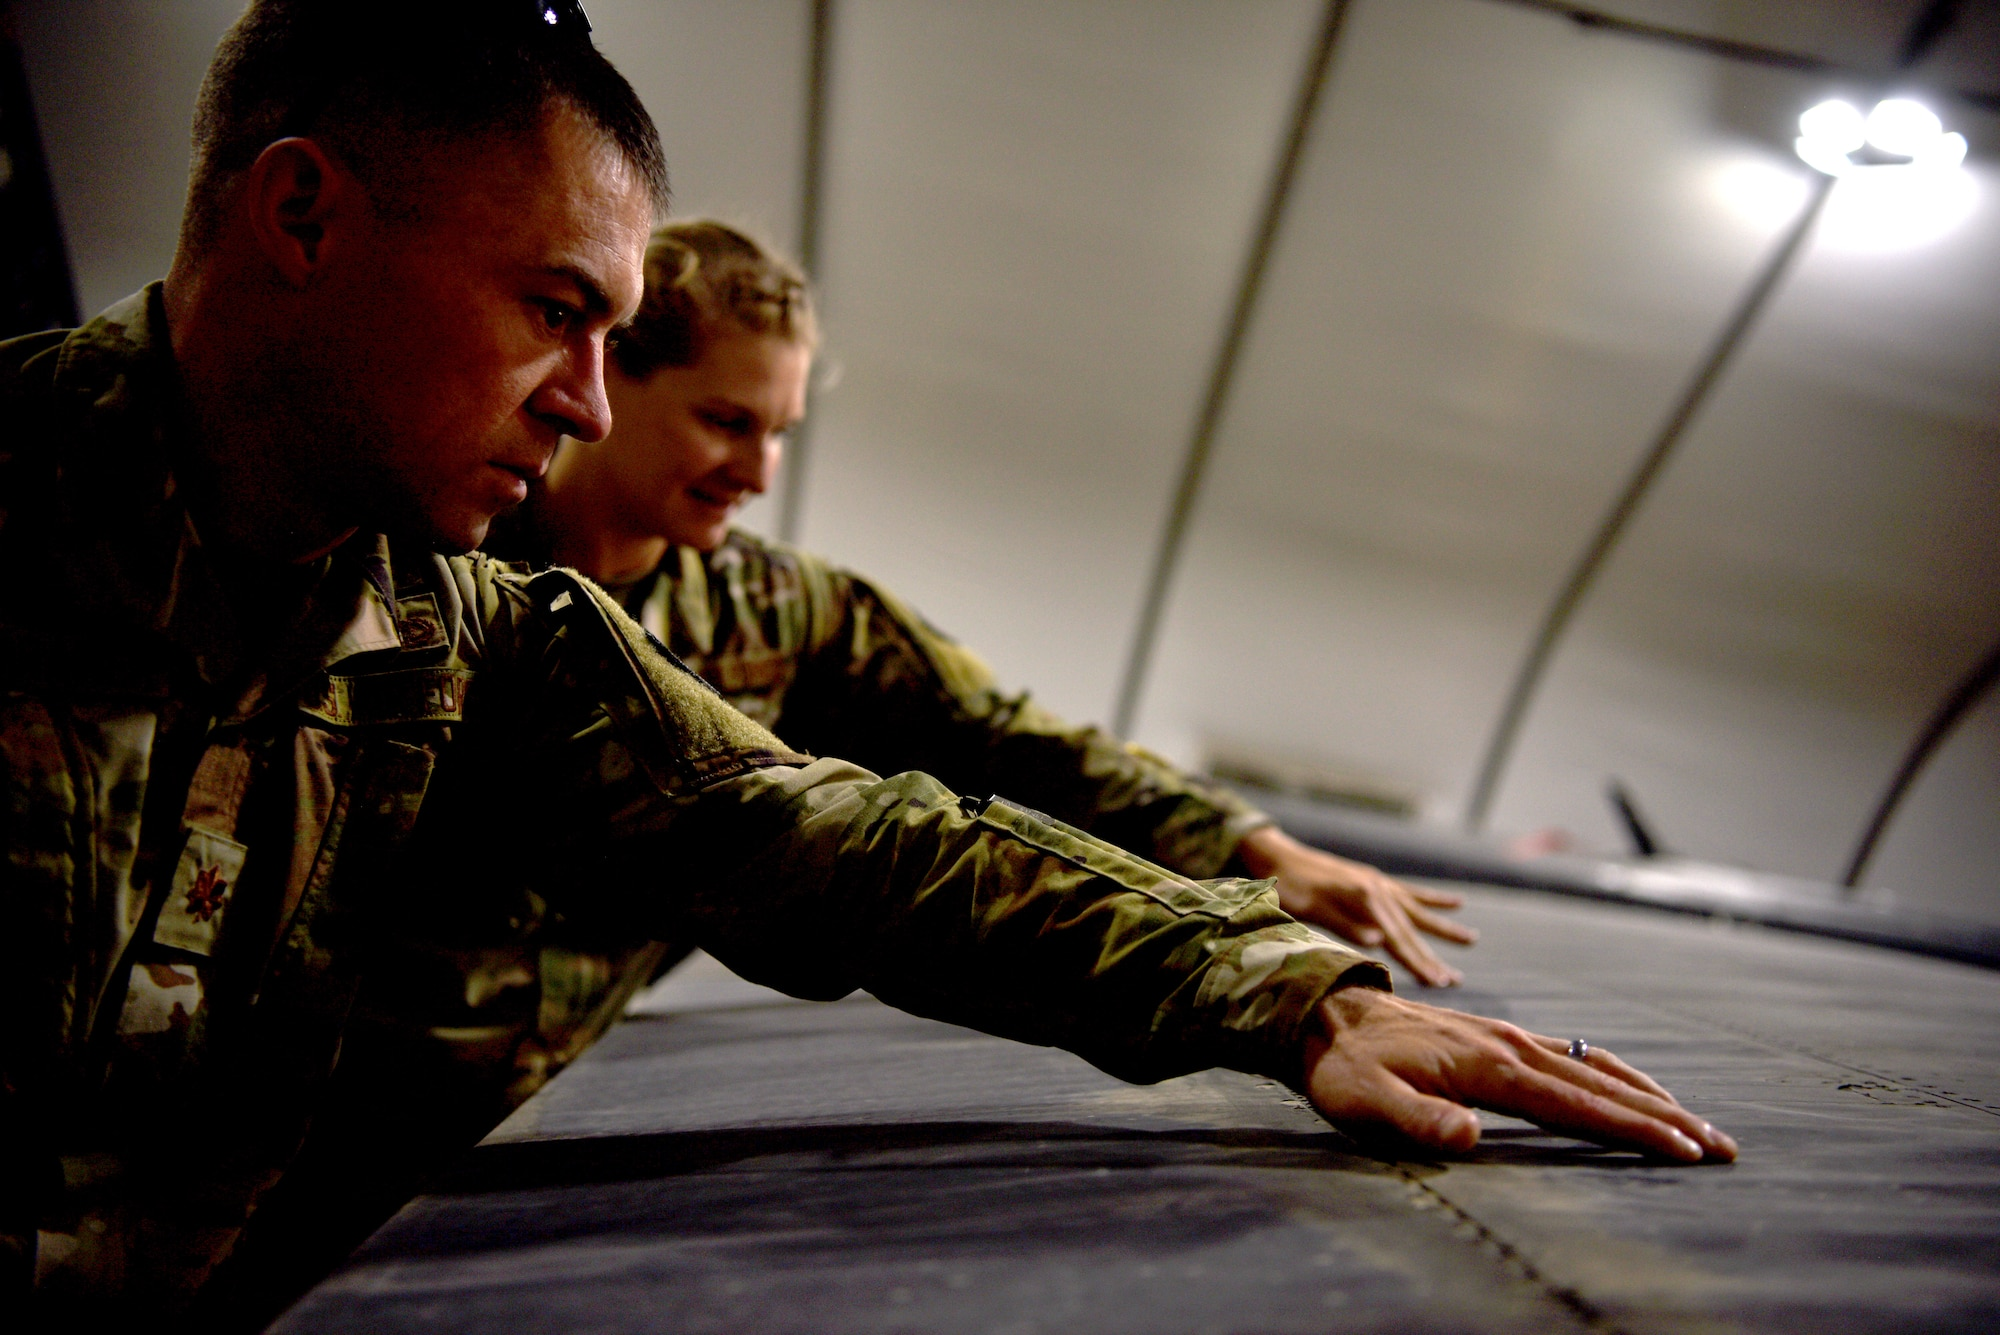 U.S. Air Force 1st Lt. M. Rebecca Kretzer, 380th Expeditionary Maintenance Group Depot Liaison Engineer, discusses potential maintenance requests during turnover with her replacement, Maj. Joseph Czabaranek, April 11, 2019.